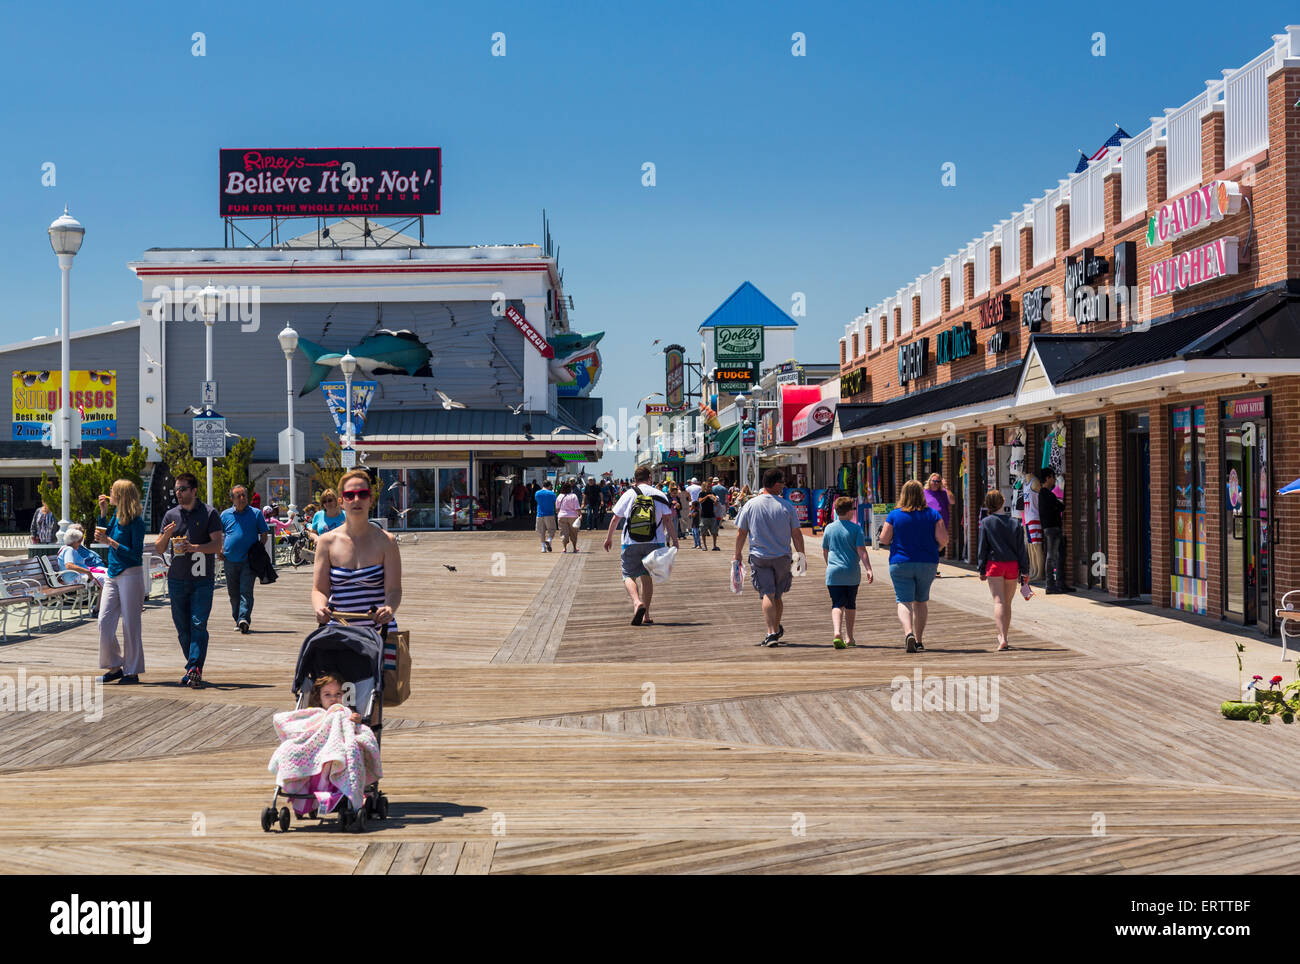 Ocean City, Maryland on the US East Coast, USA in summer - Stock Image